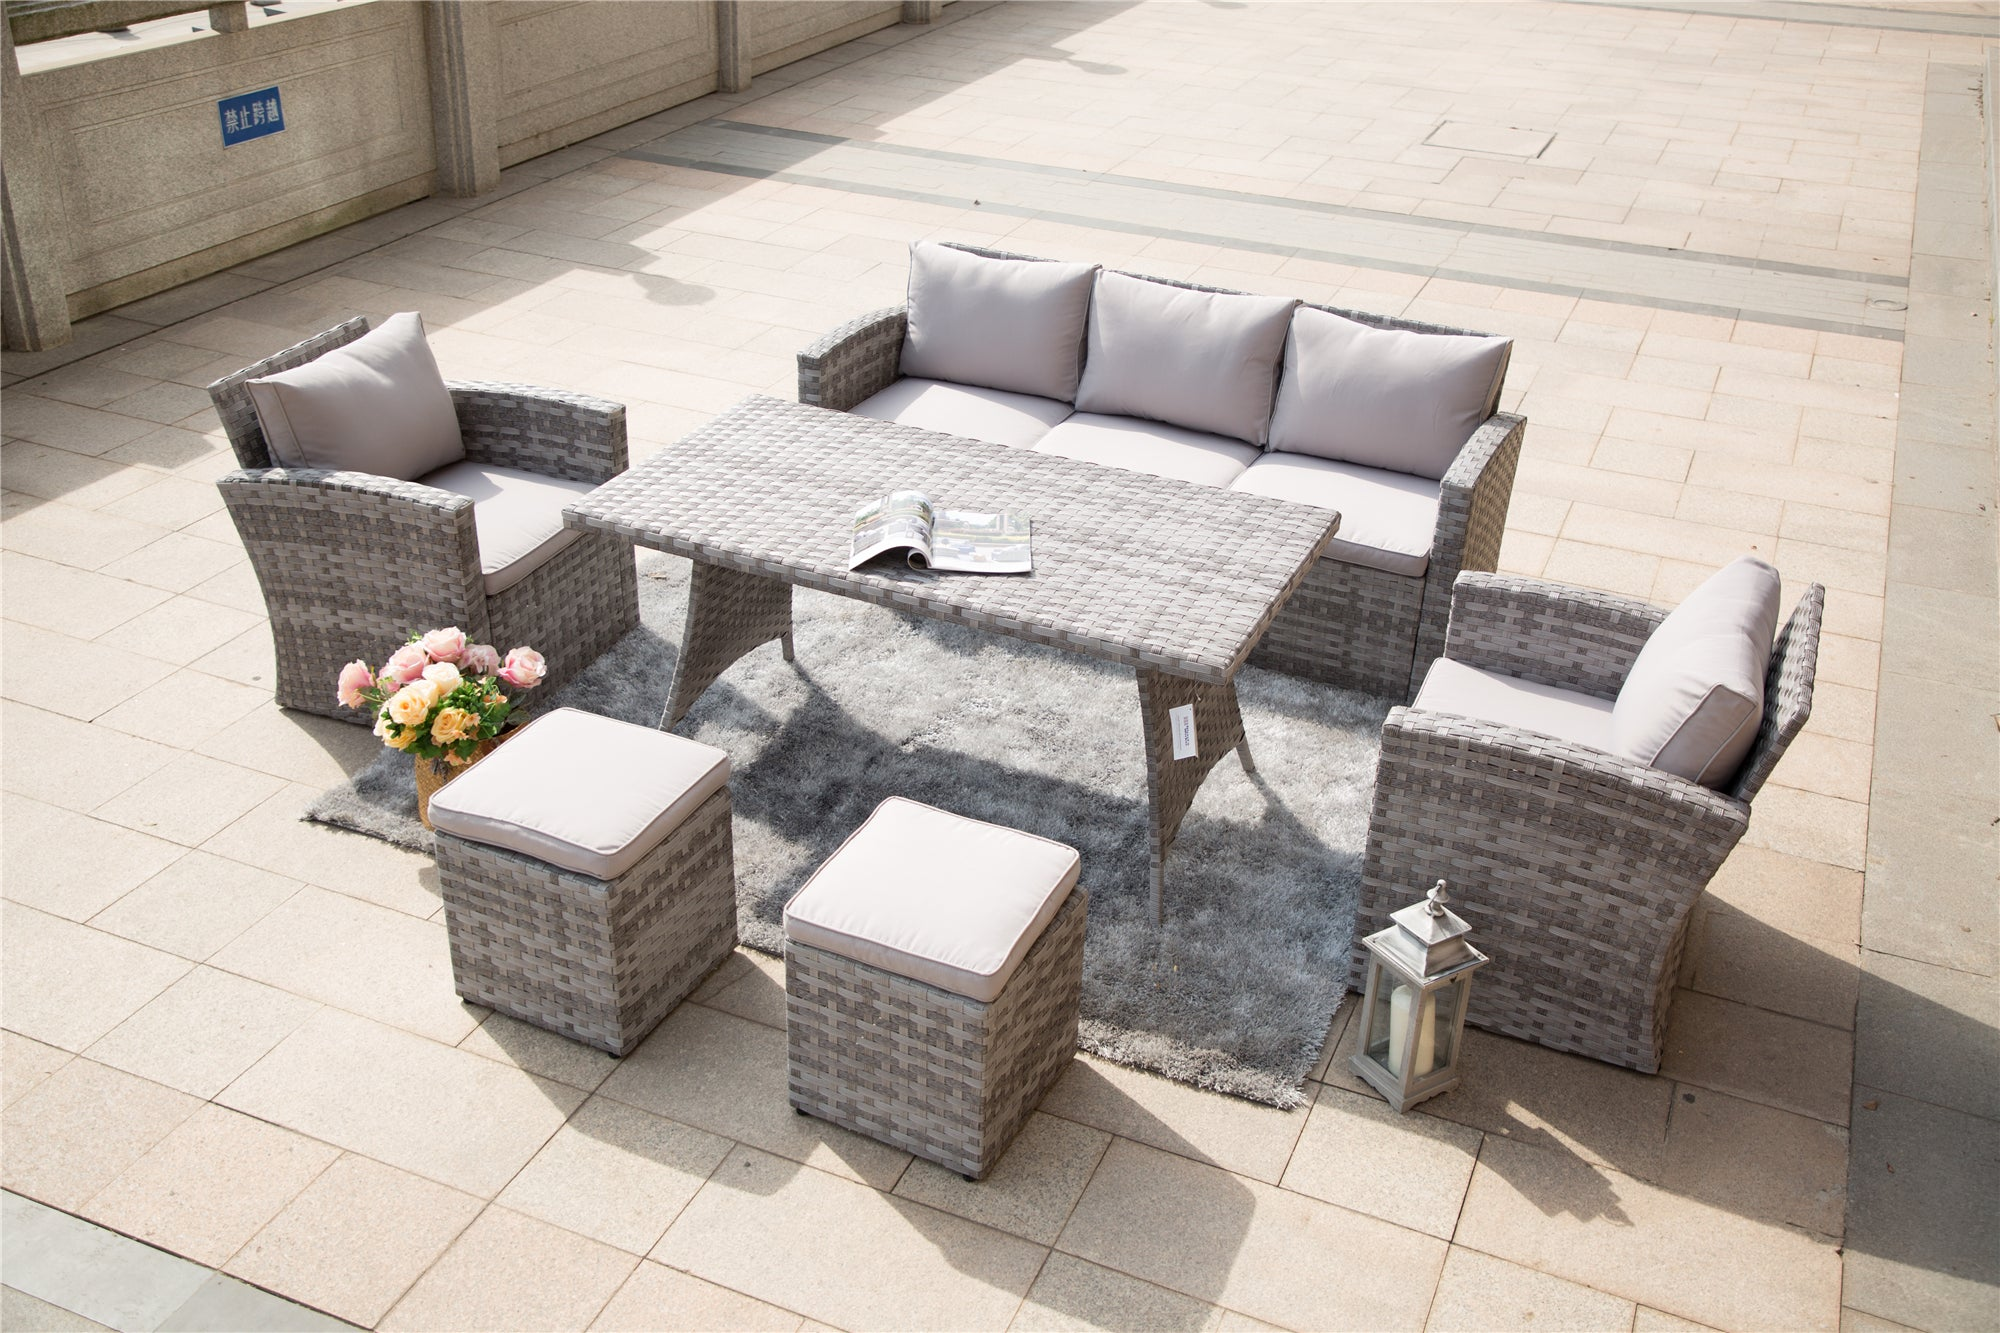 Danbury Outdoor Rattan Sofa Set With Ottomans and Dining Table - 7 Pcs (PREORDER)